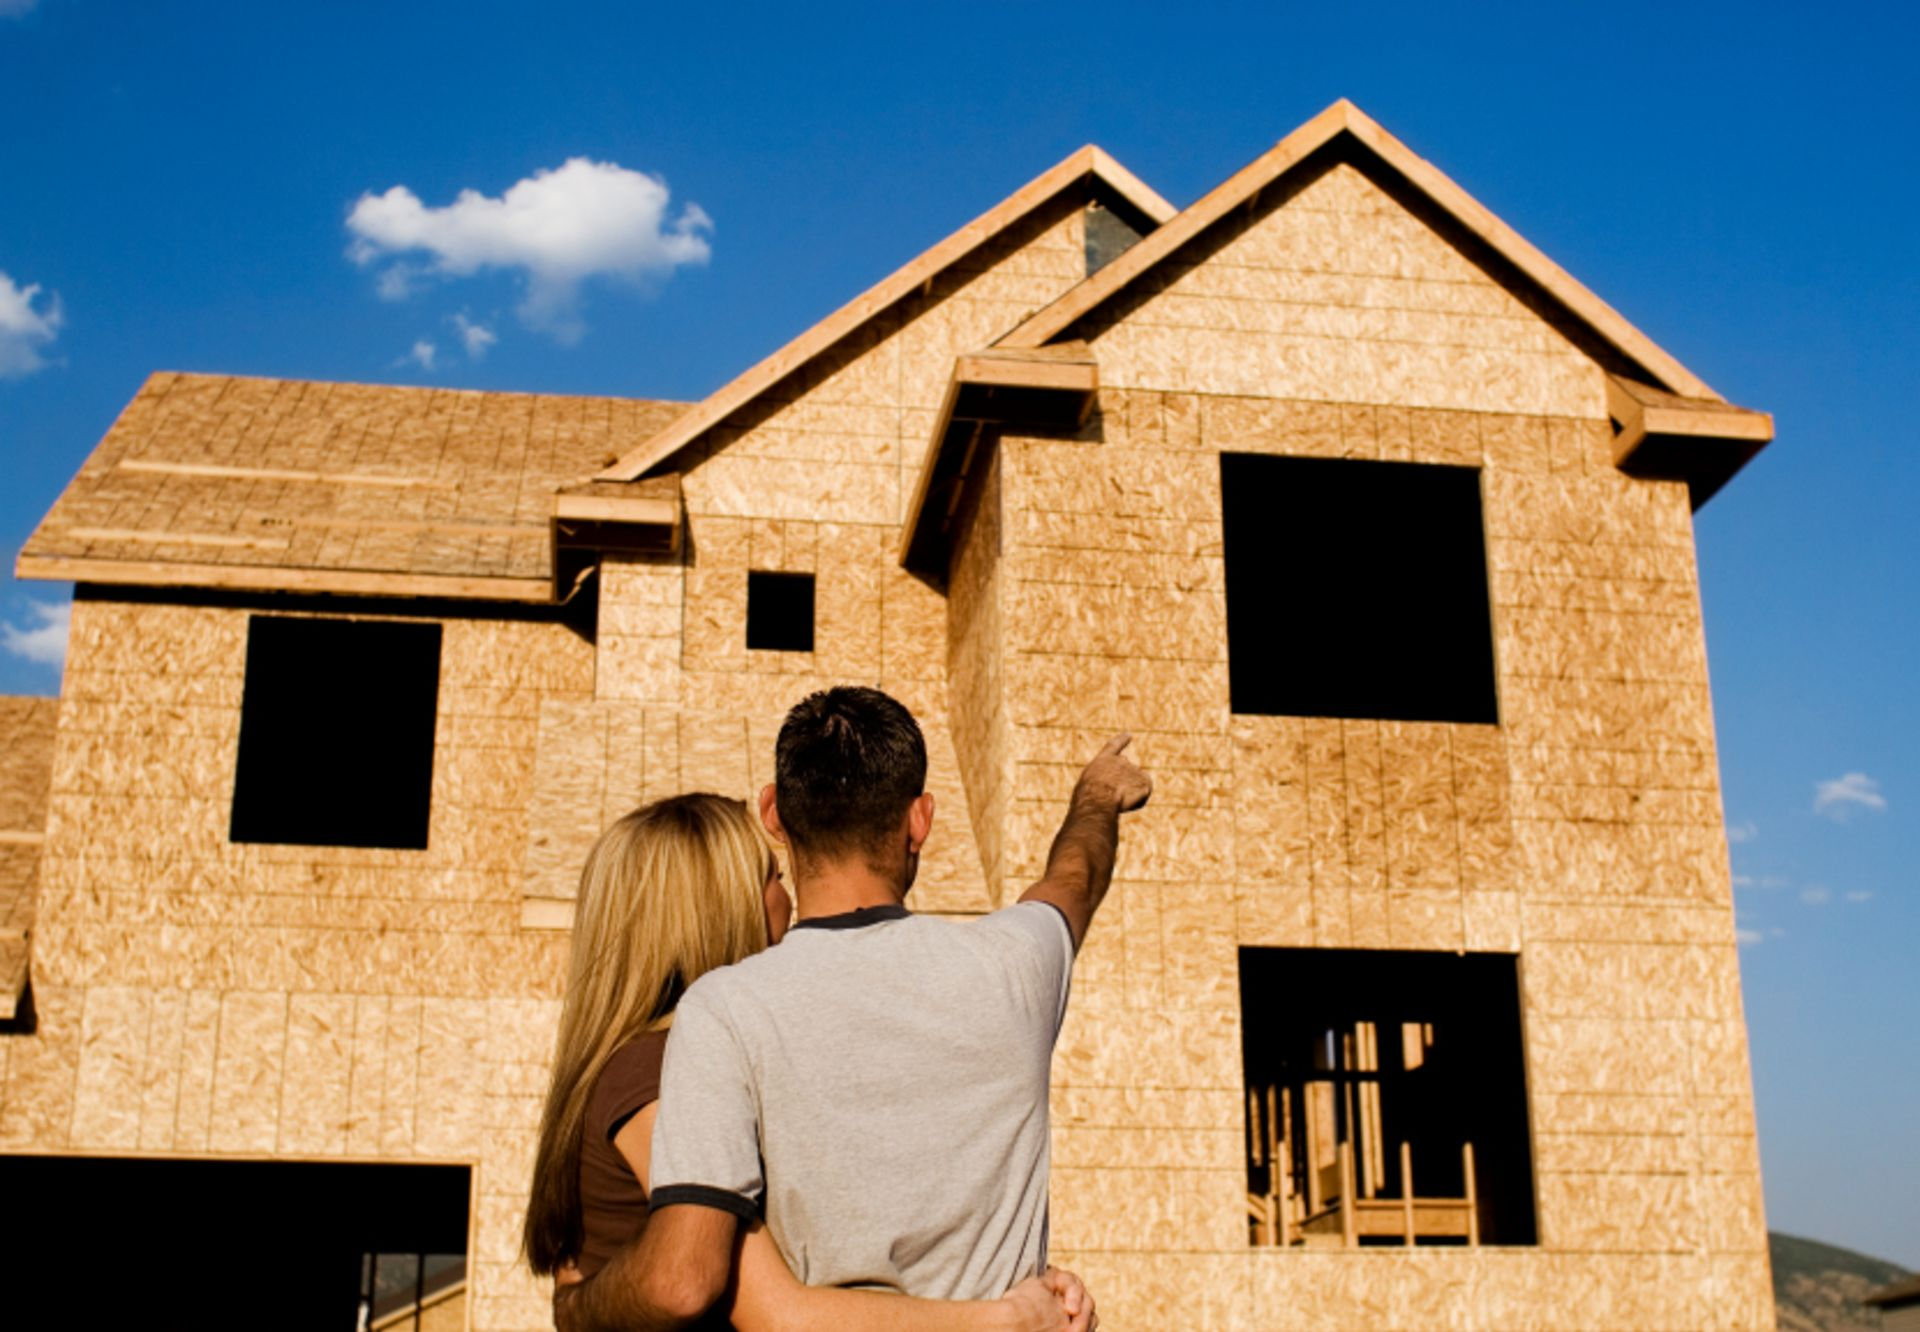 Buying a New Construction Home. Dream or Nightmare?